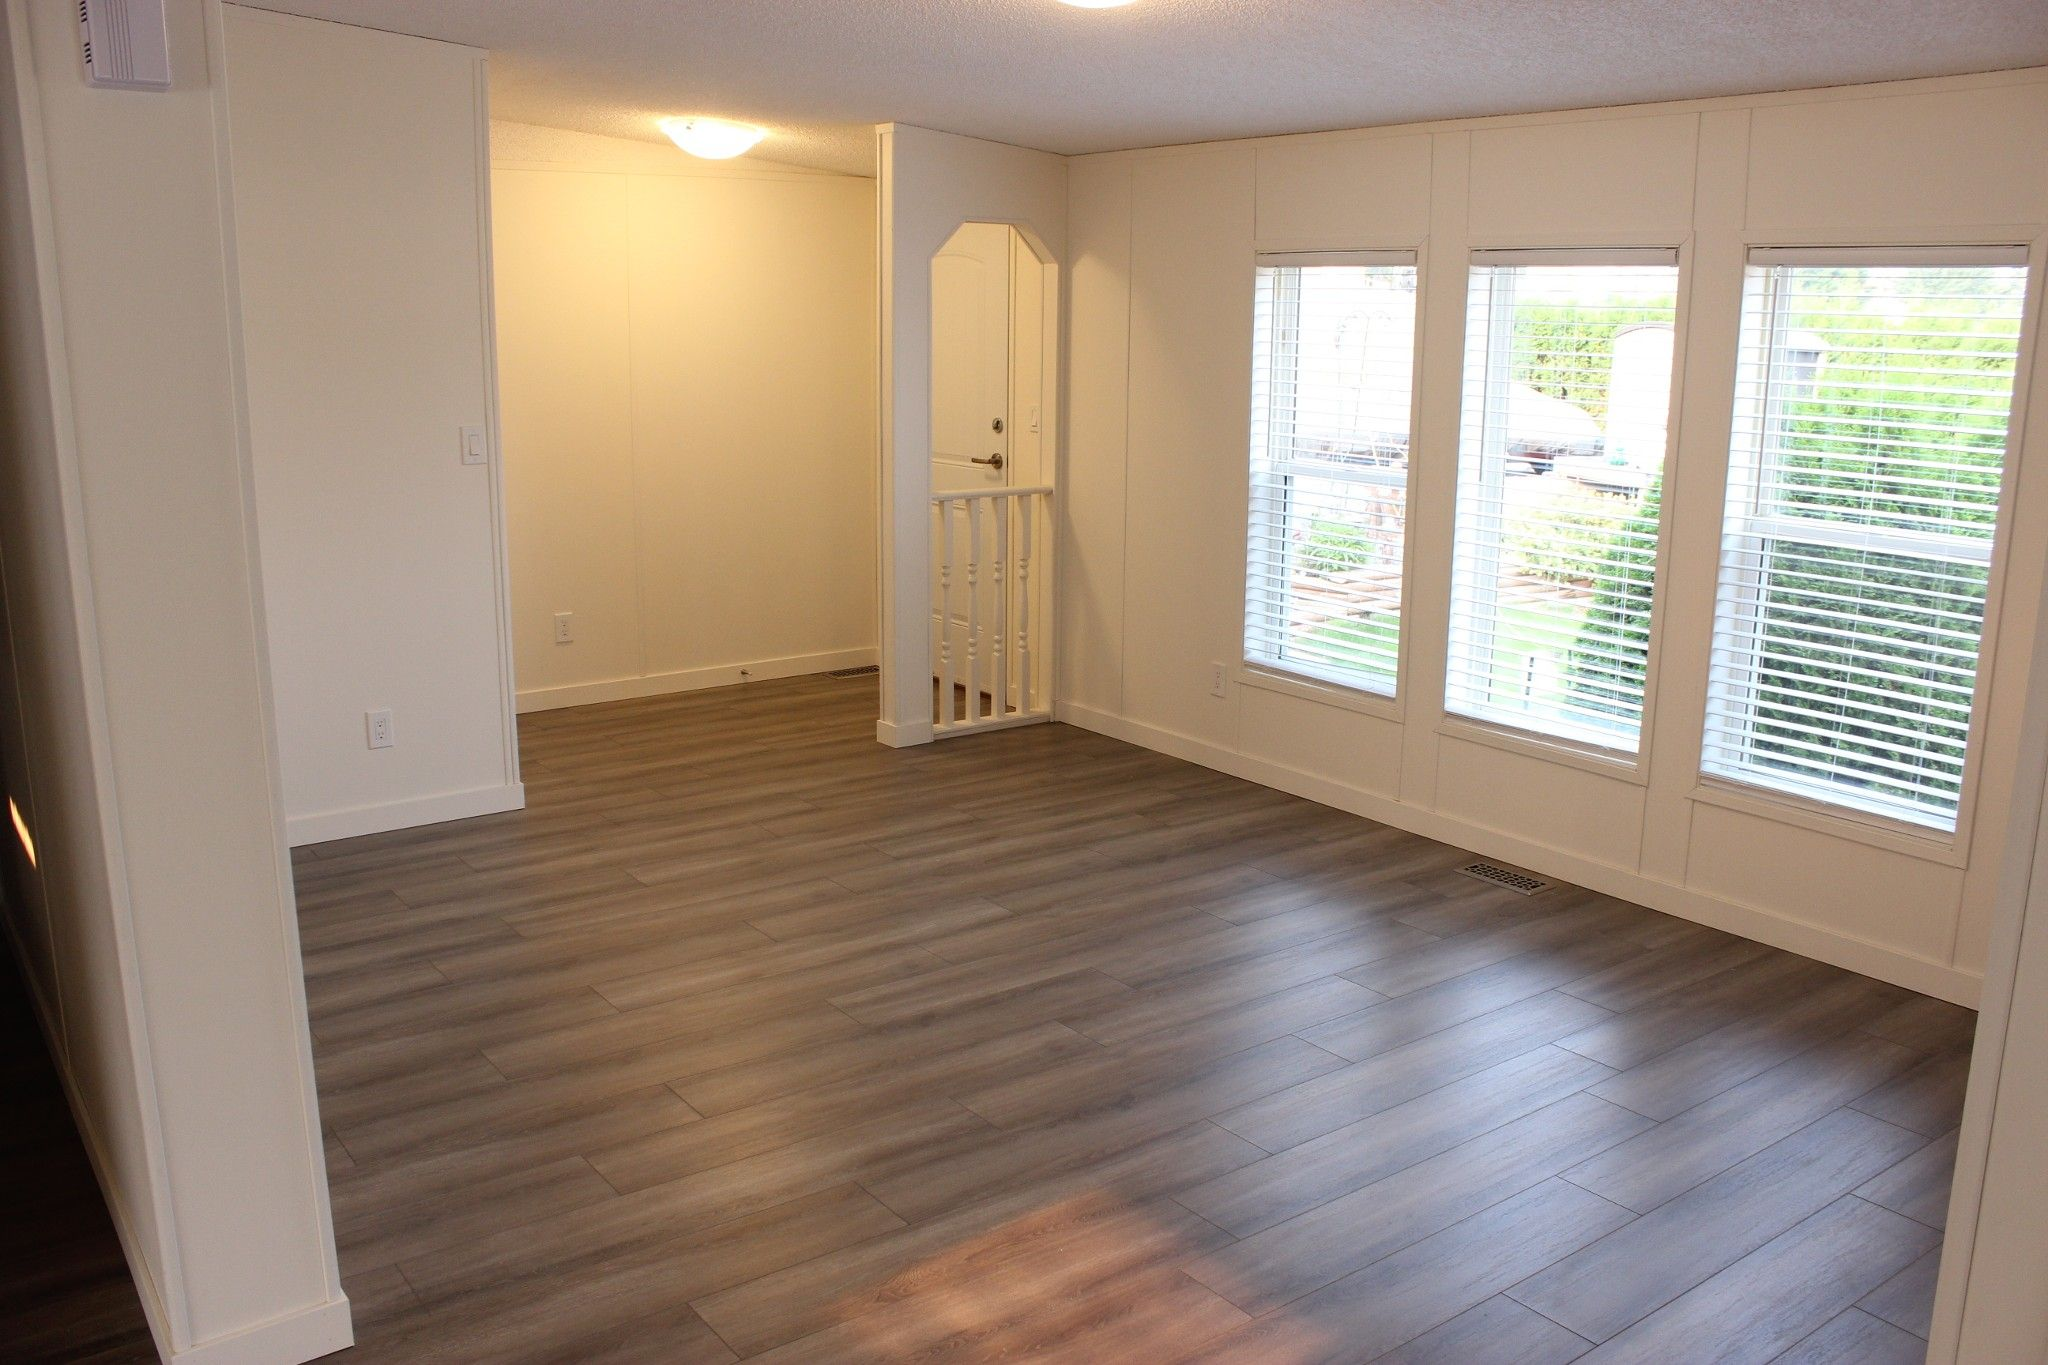 Photo 2: Photos: 22 3099 E Shuswap Road in Kamloops: South Thompson Valley Manufactured Home for sale : MLS®# 147827